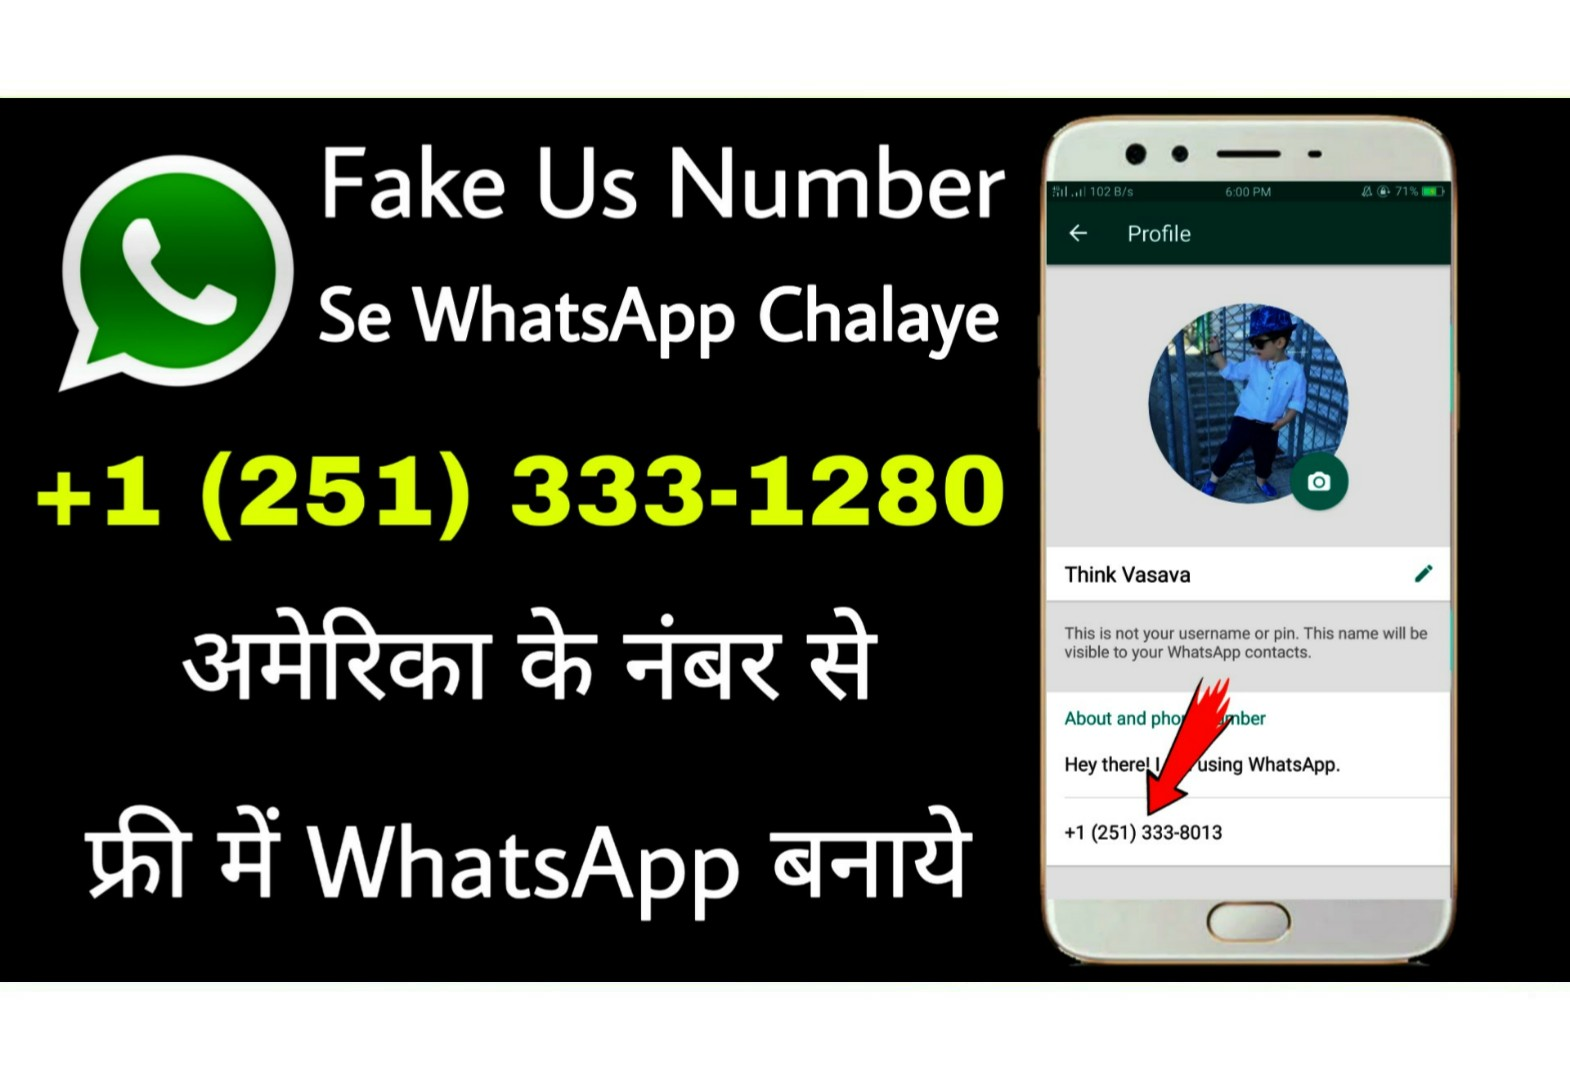 Fake Number Se WhatsApp Kaise Chalaye - American Us Number